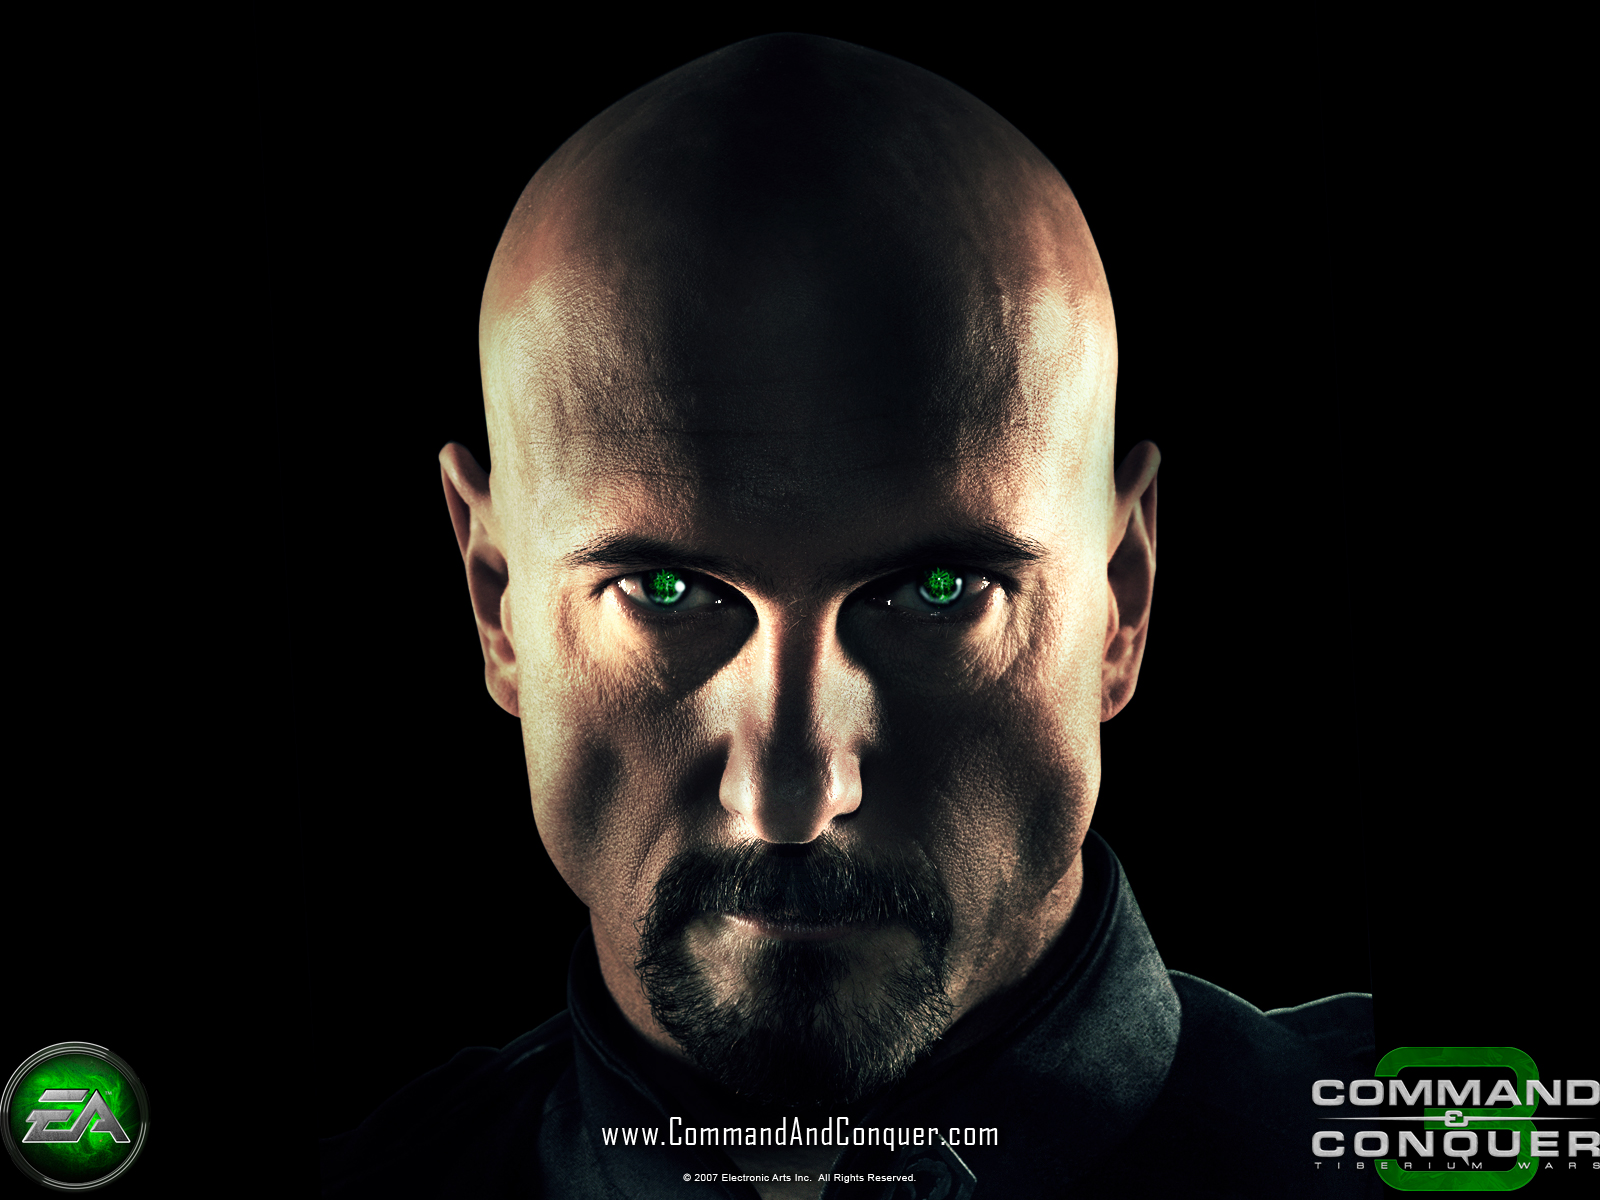 Command And Conquer Wallpapers - Wallpaper Cave